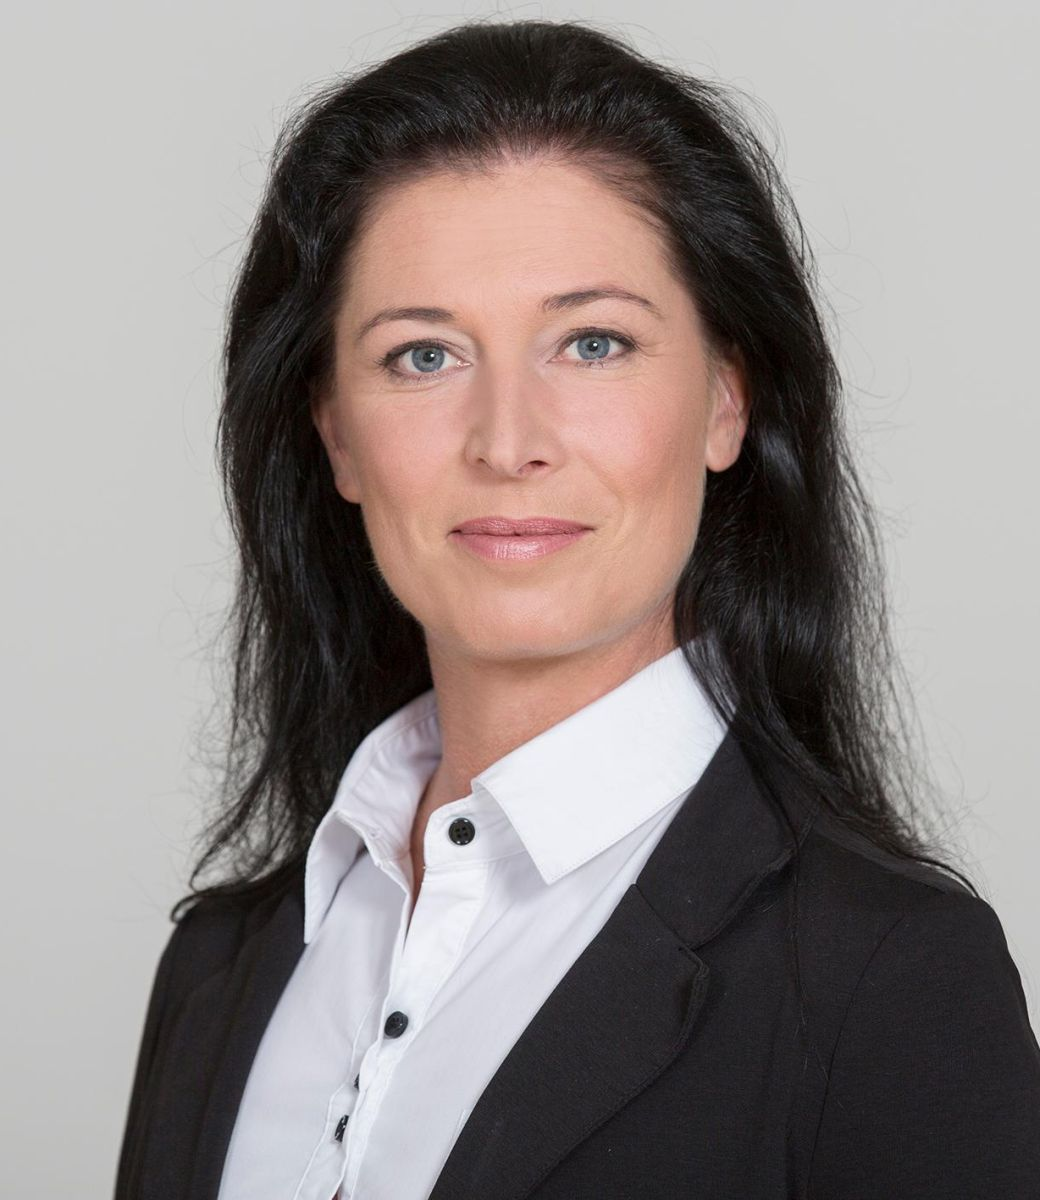 Judith Willnauer, MBA, MSc